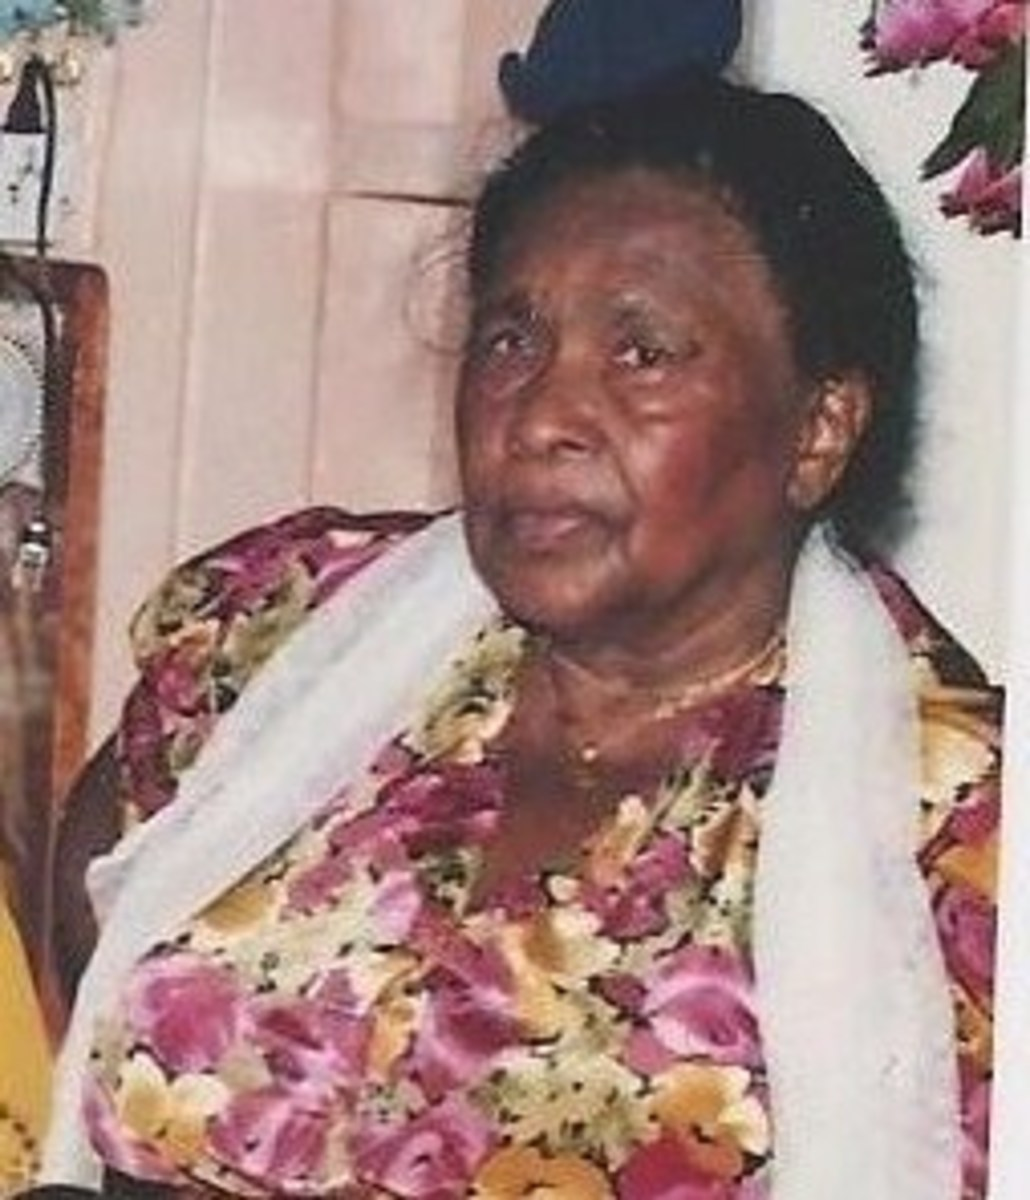 My paternal Grandmother at 74 years of age.